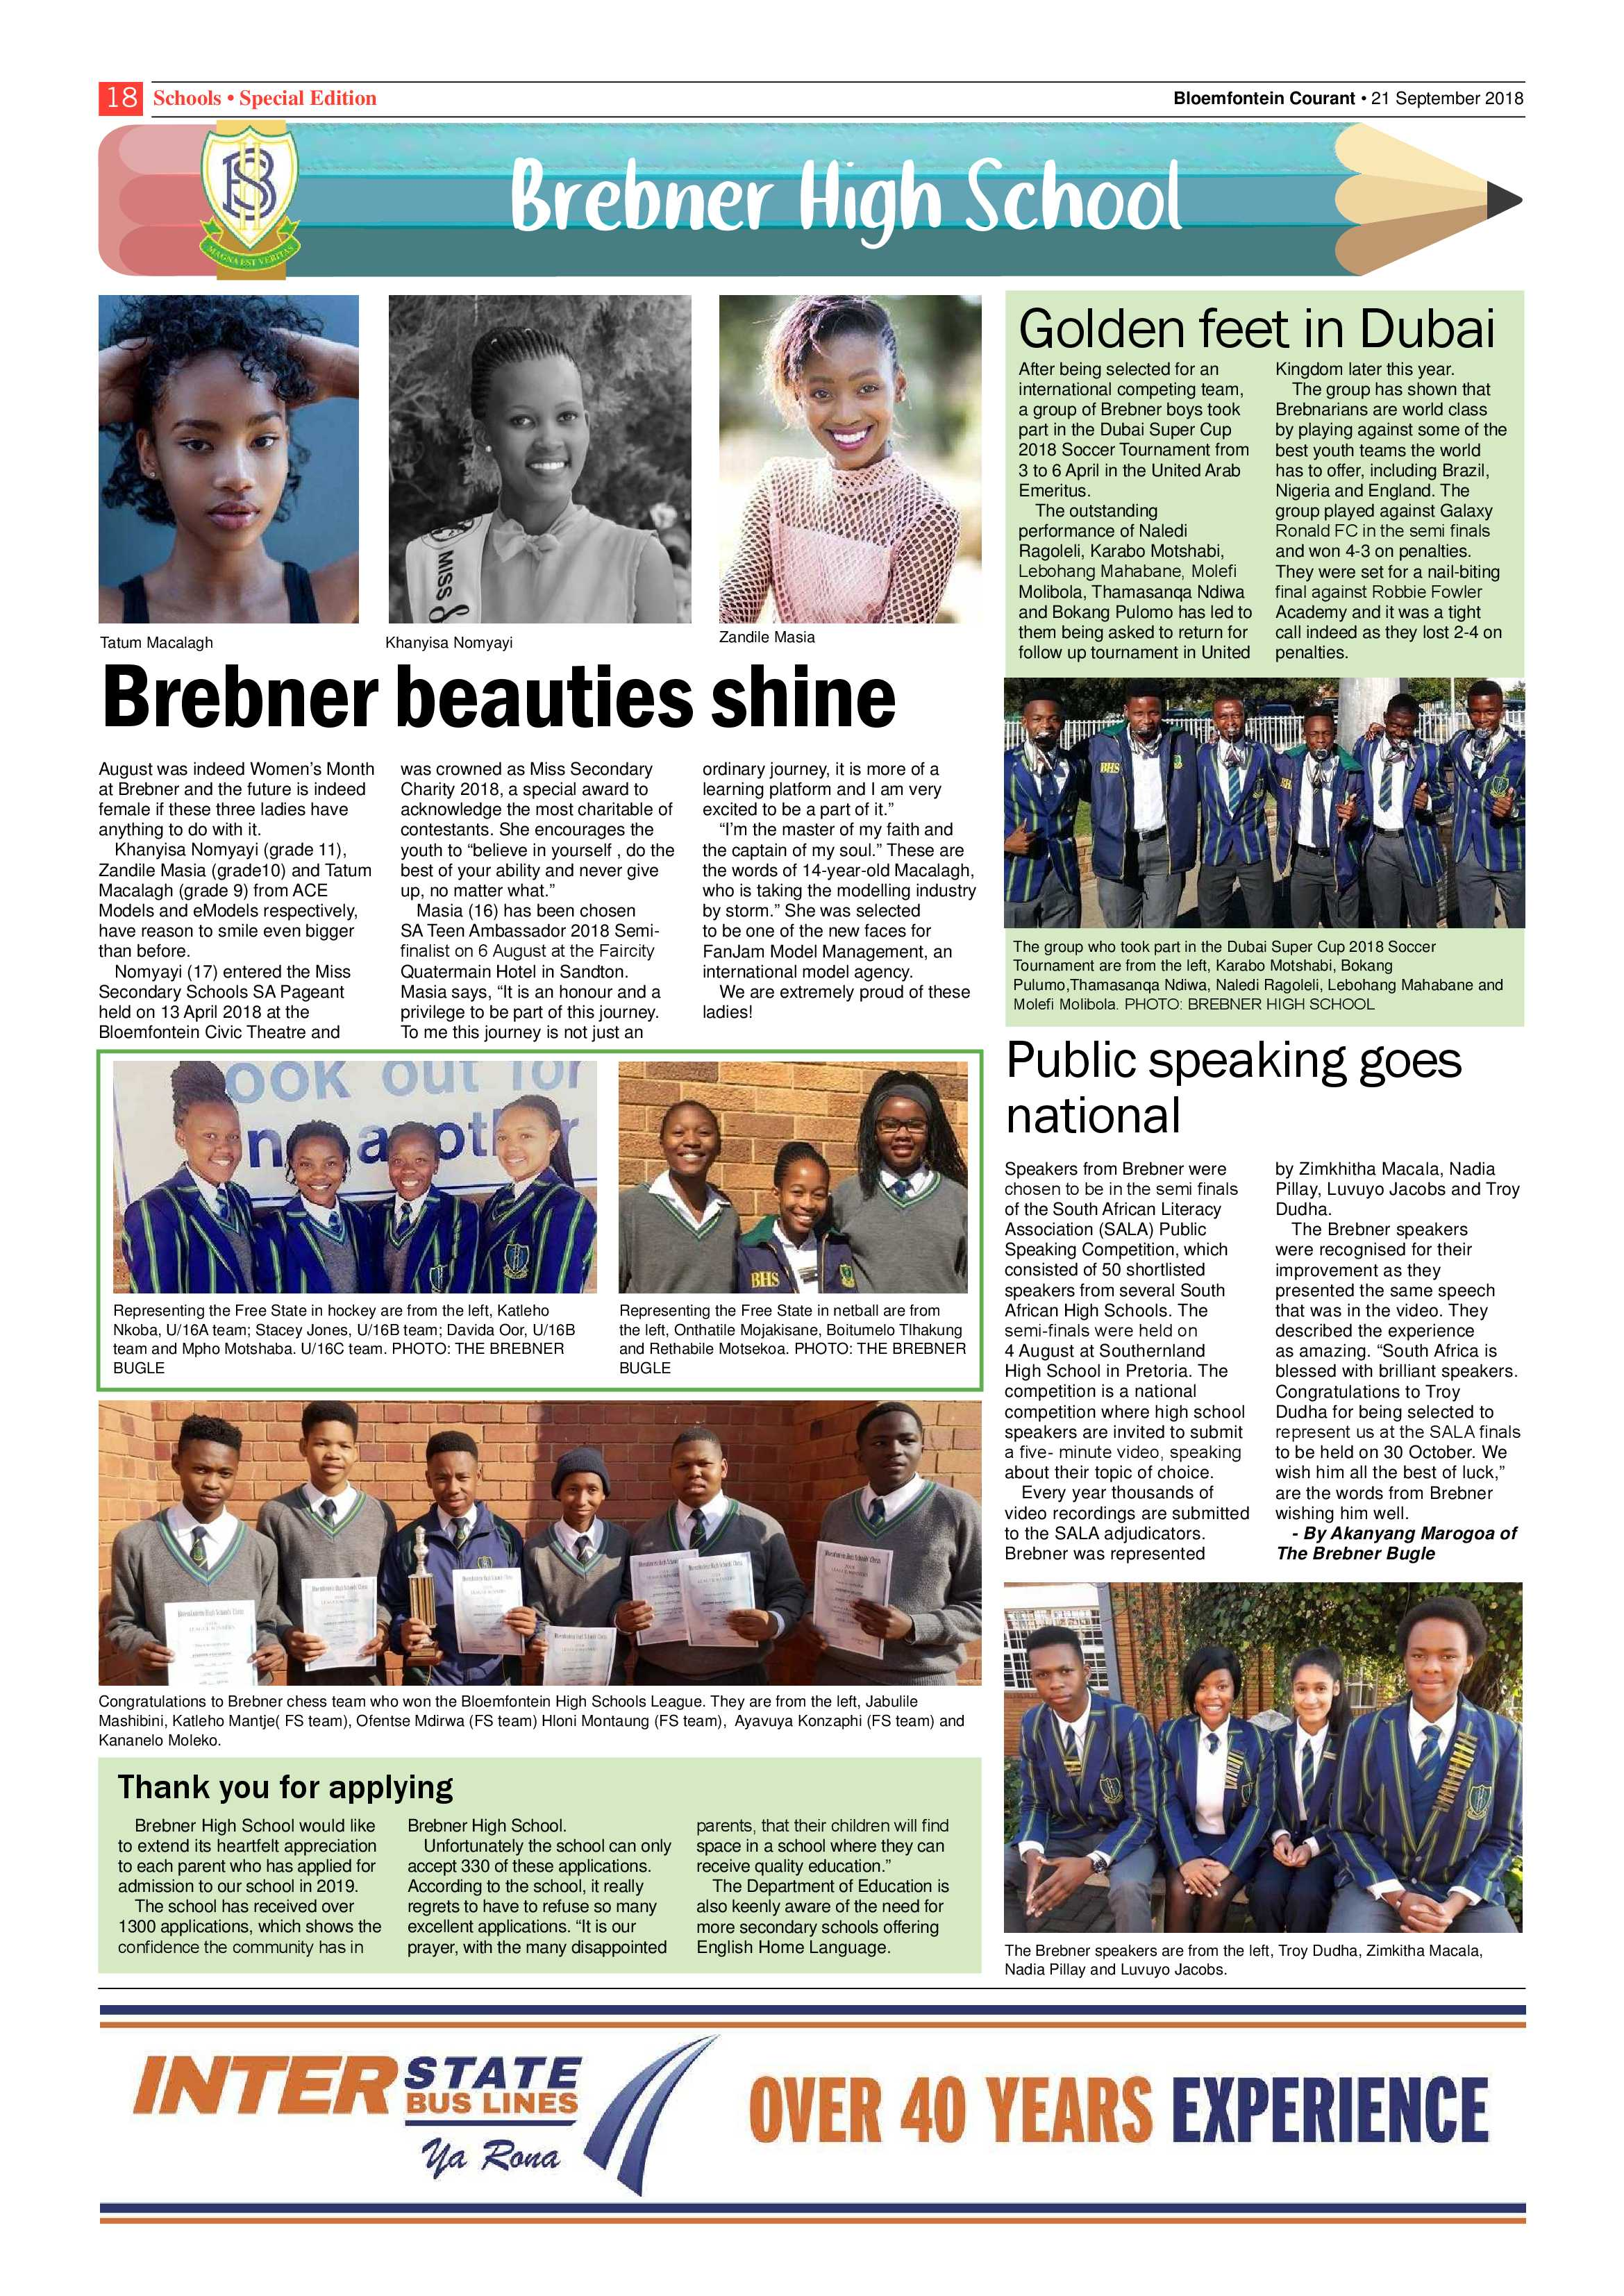 courant-schools-edition-20-september-2018-epapers-page-16